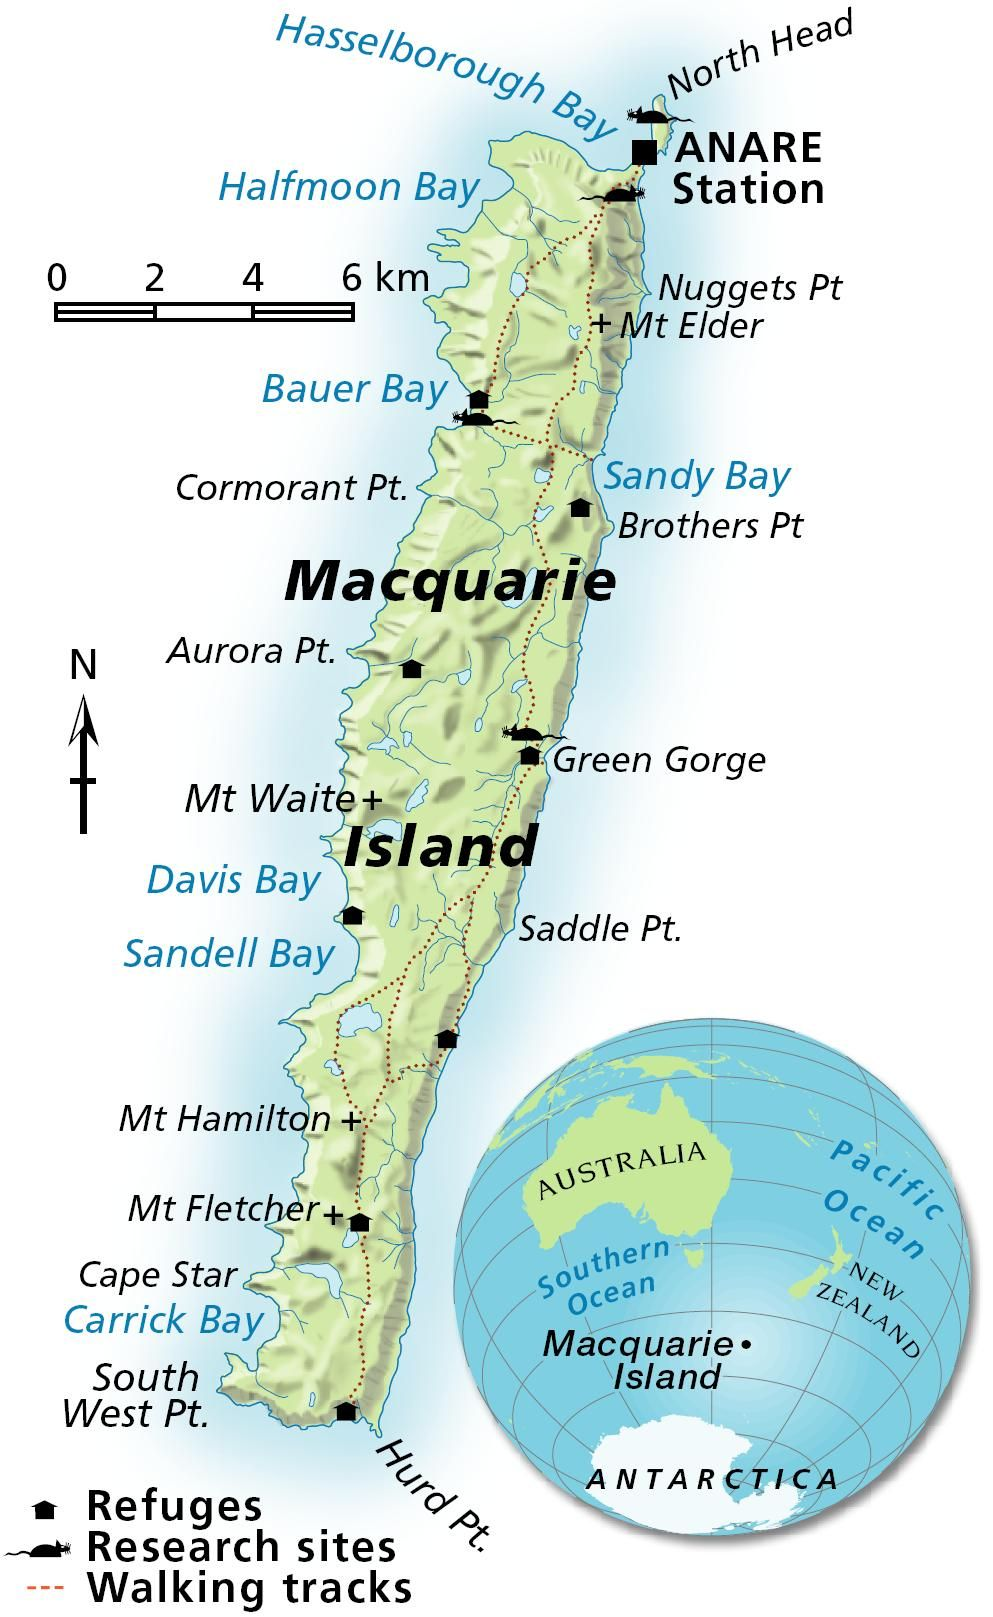 Macquarie Island Map Macquarie Island Map | Landon's Maps | Small island, Island  Macquarie Island Map